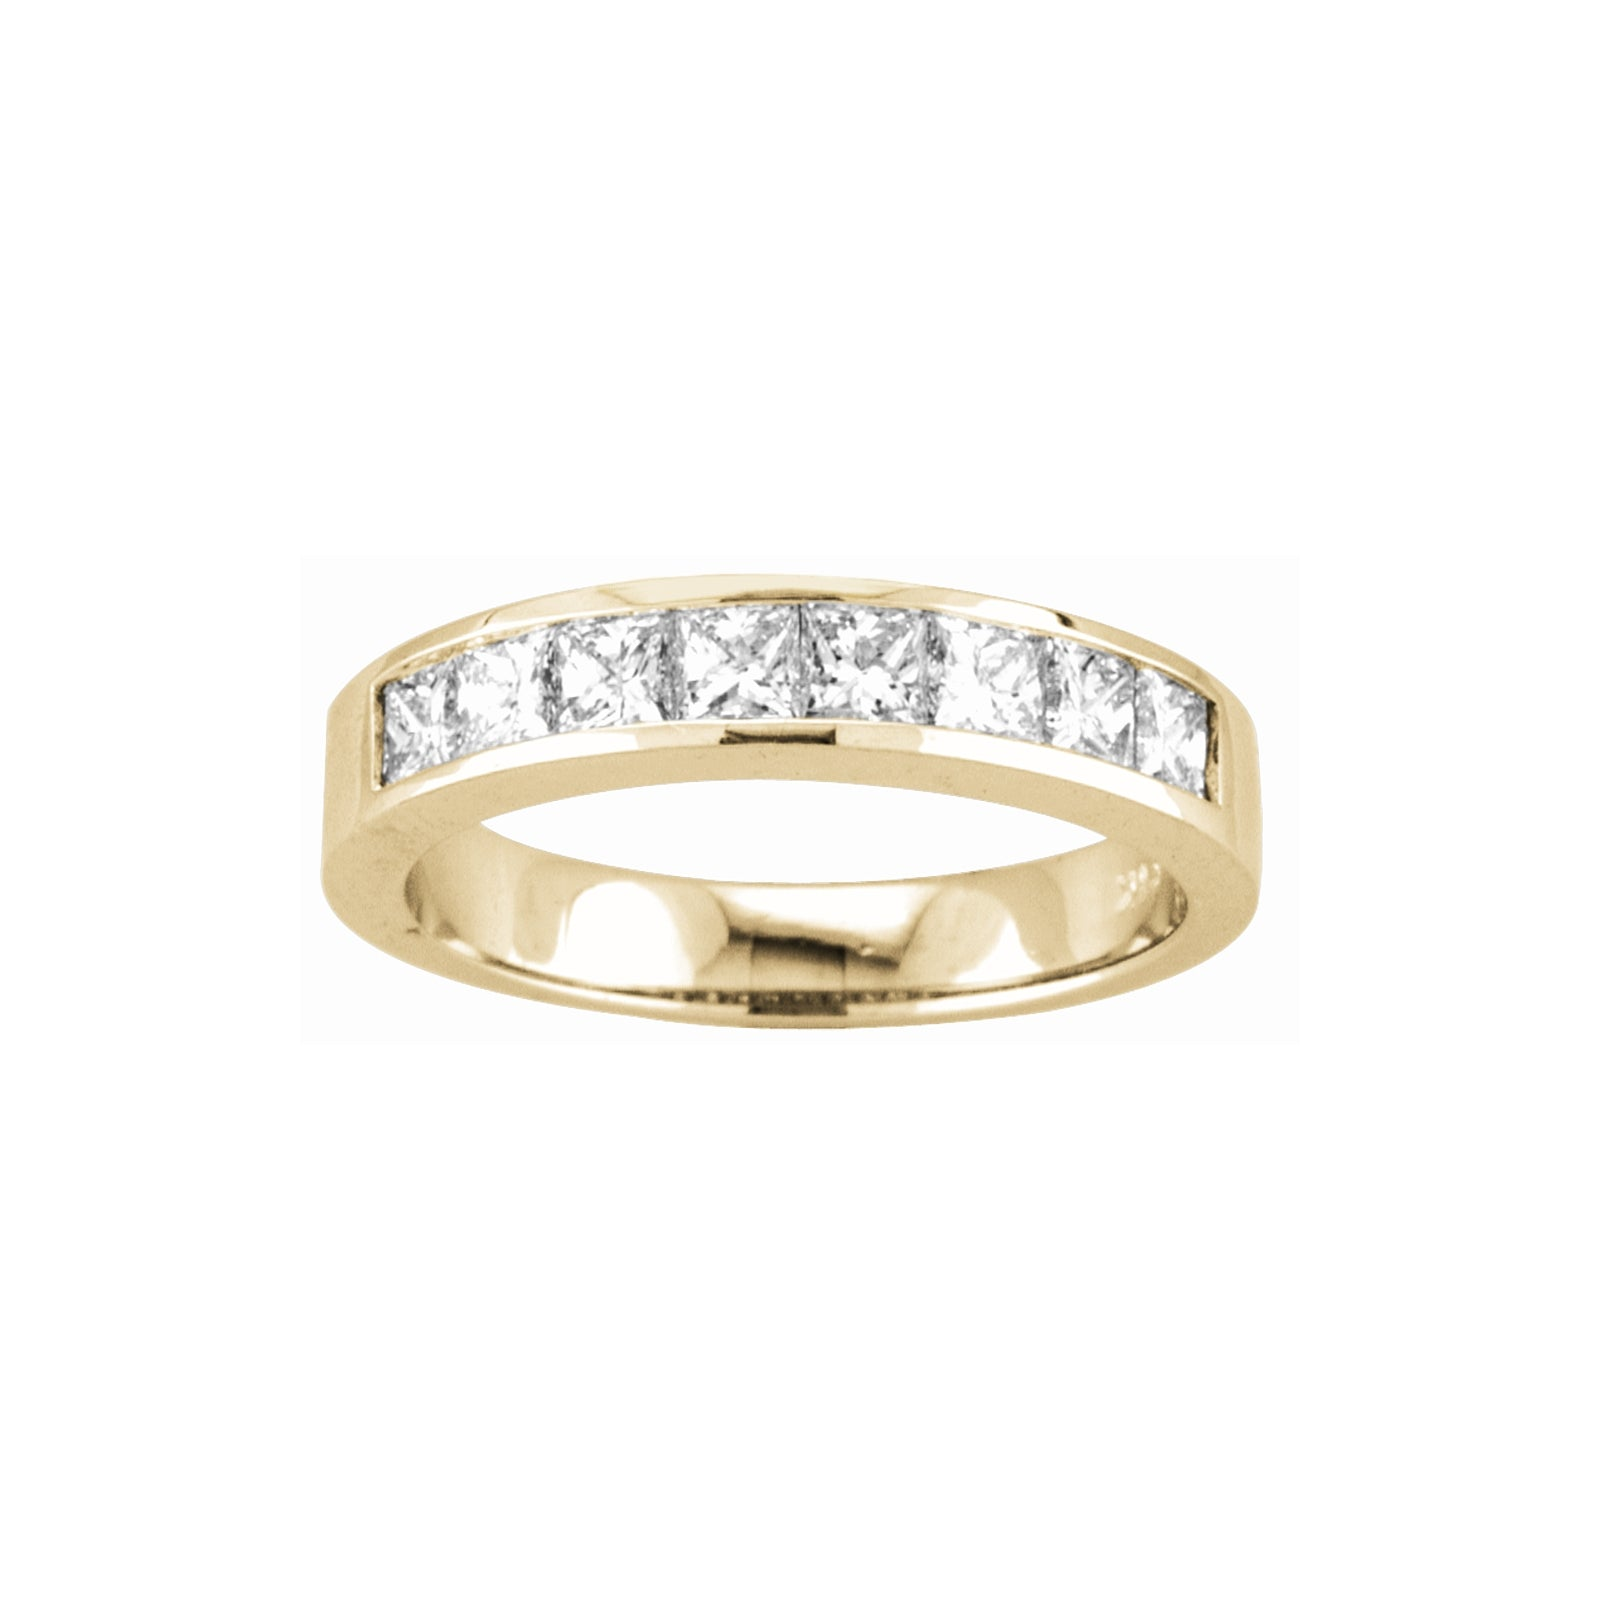 Channel Set Princess Cut Diamond Band, .75 Carat, 14K Yellow Gold